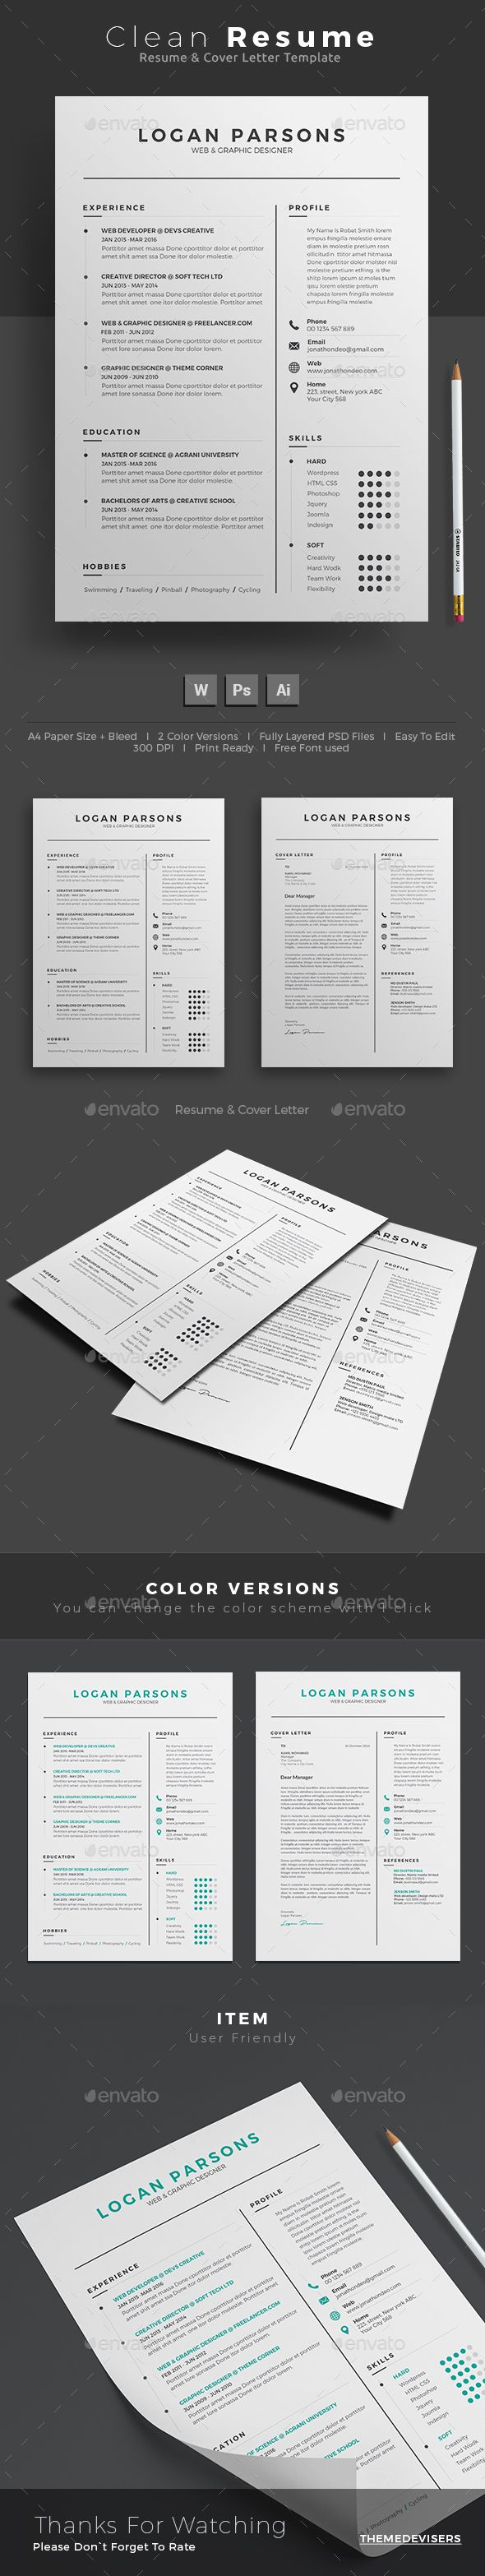 professional resume templates for ms word by hireddesignstudio - Free Professional Resume Template